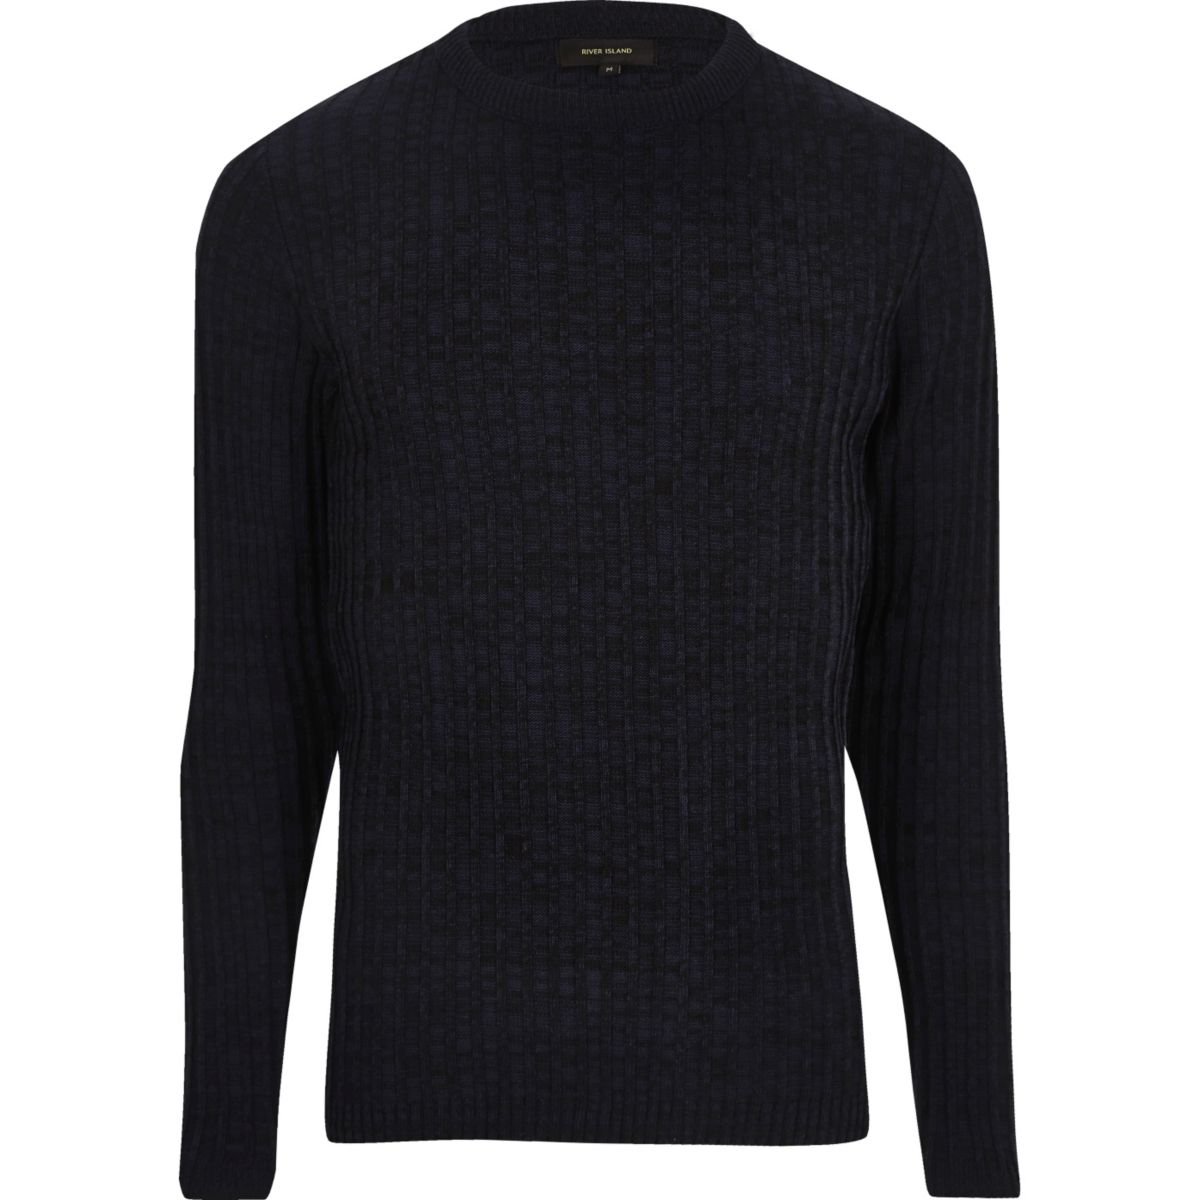 Navy blue ribbed sweater